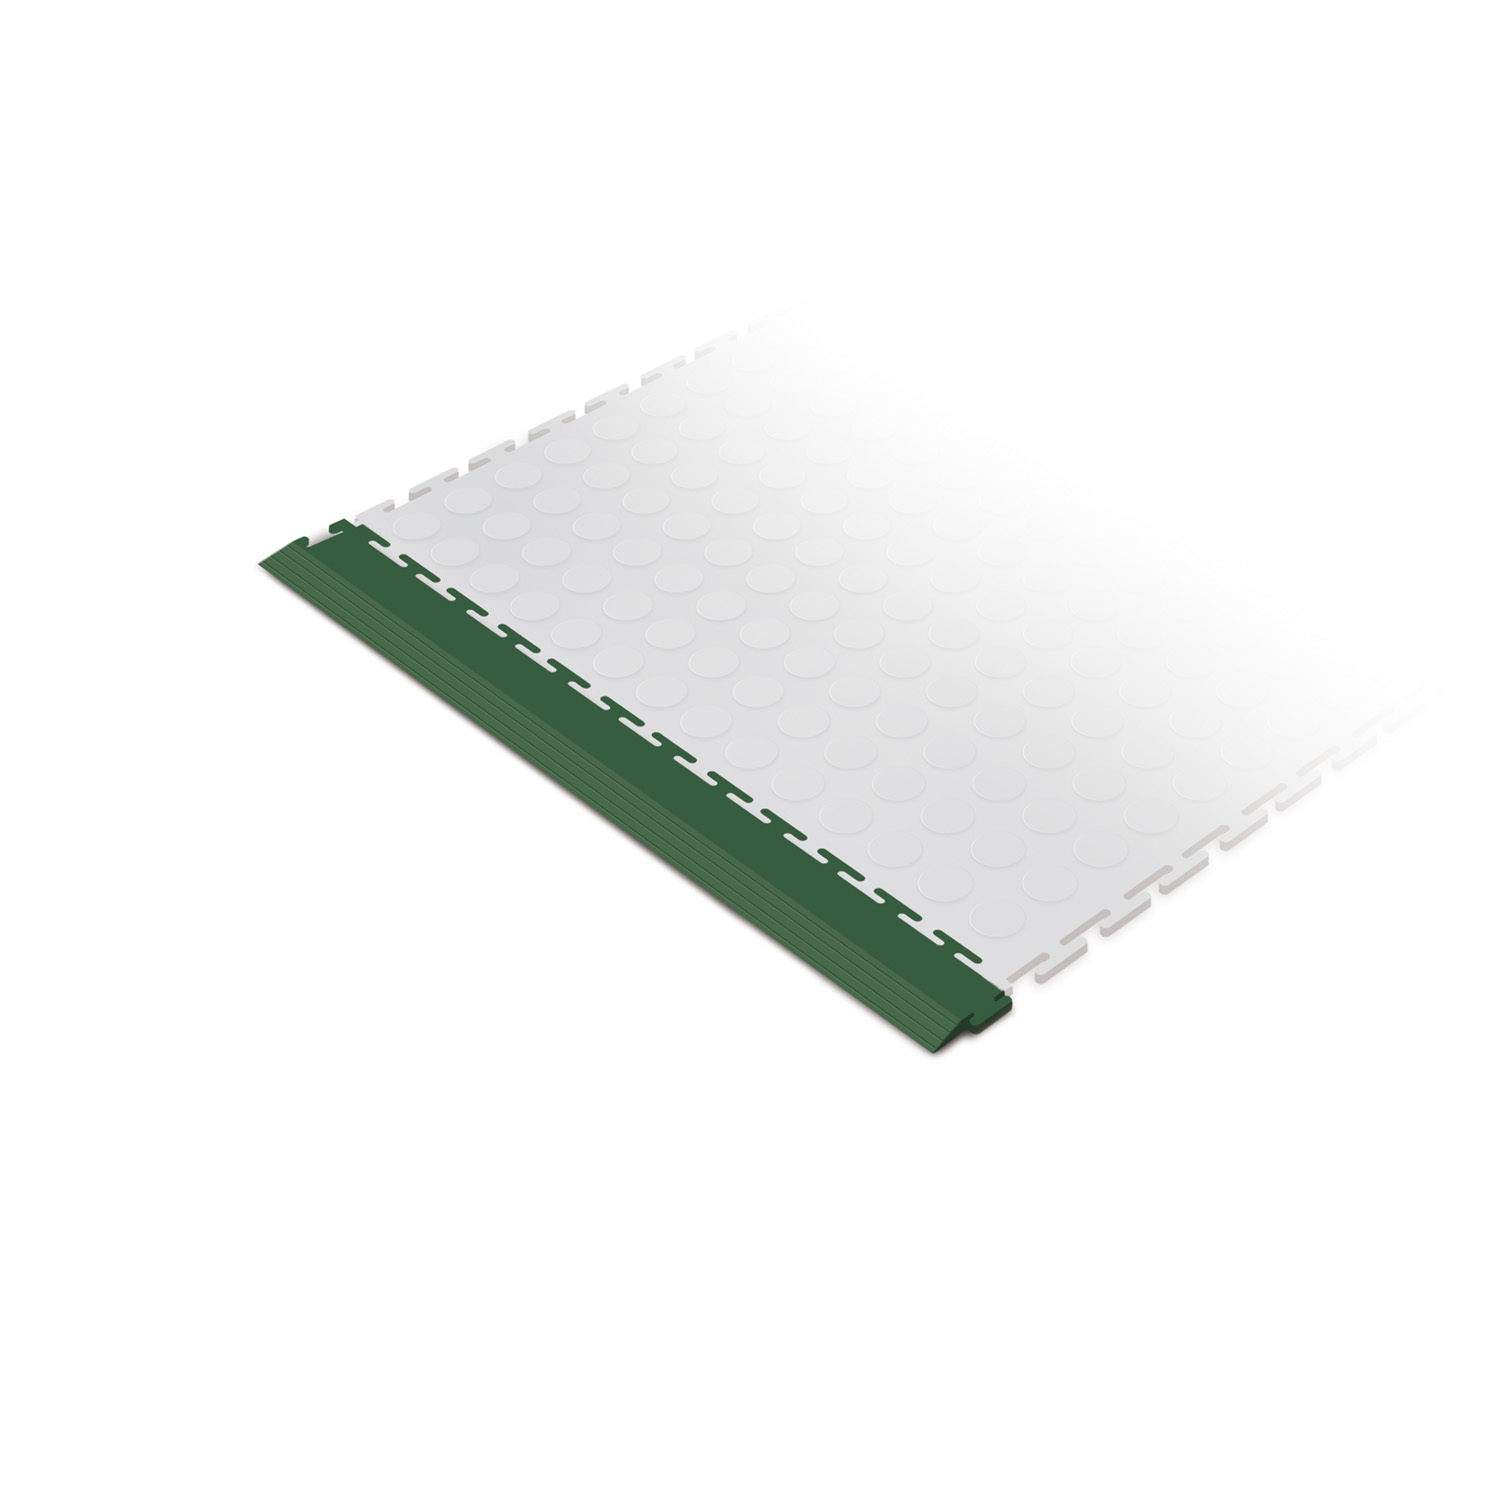 Heavy-duty edge ramp tile (green)